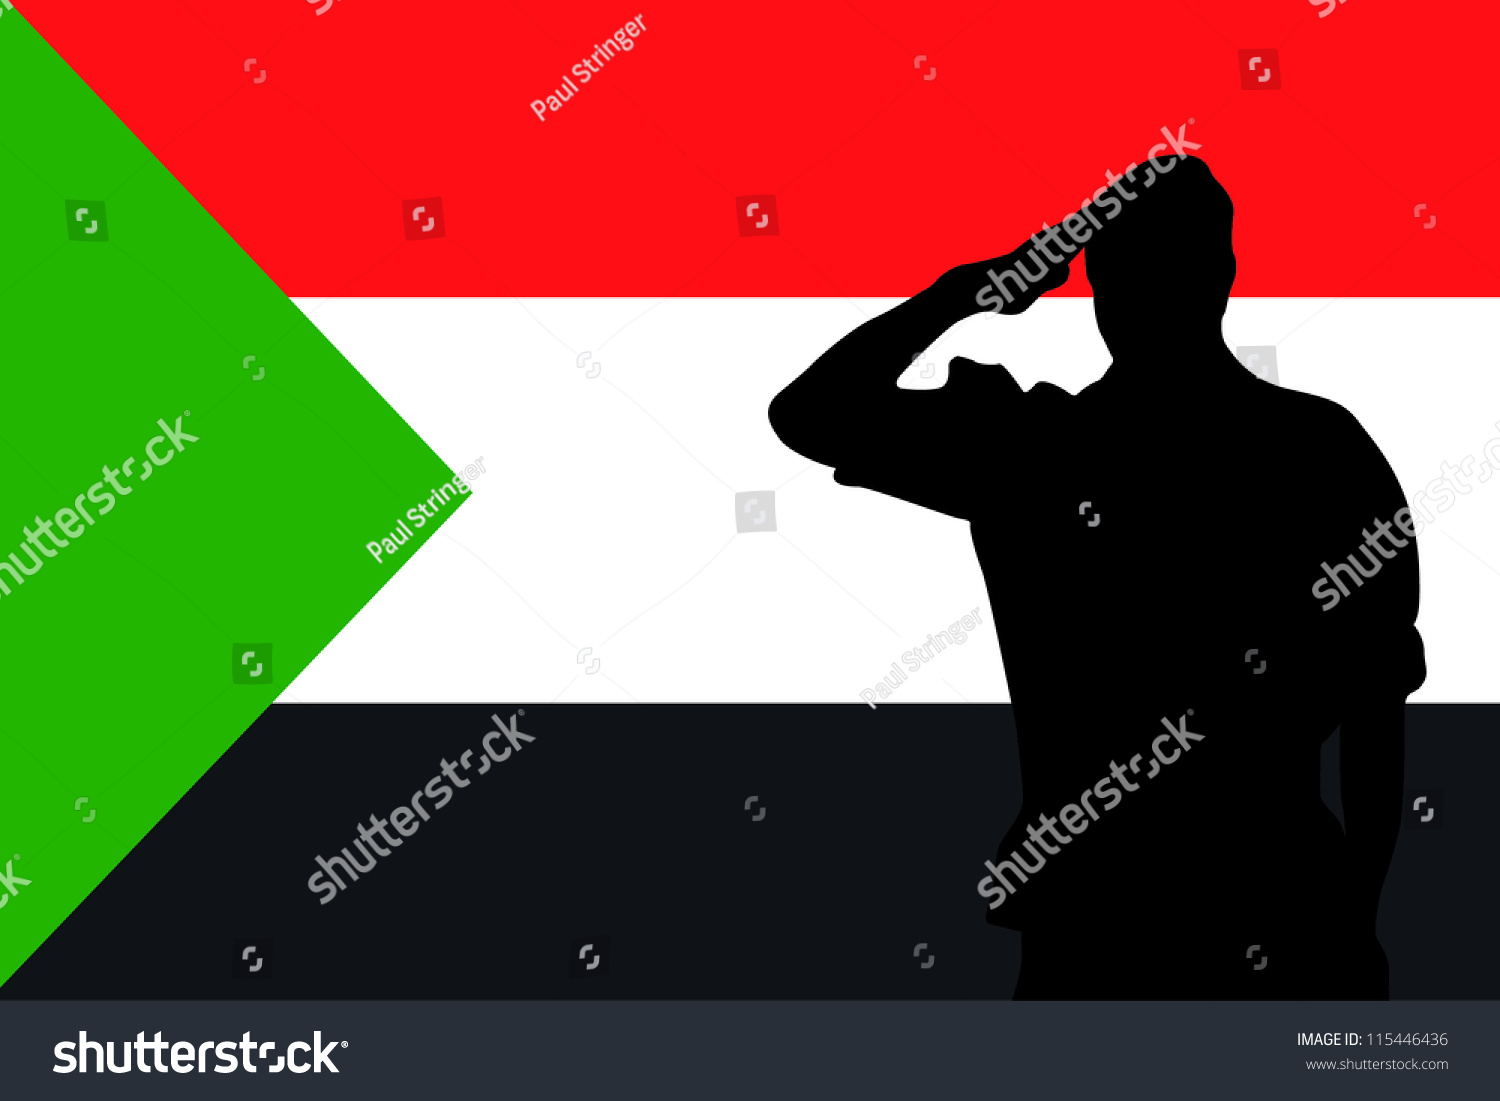 the flag of sudan and the silhouette of a soldier saluting